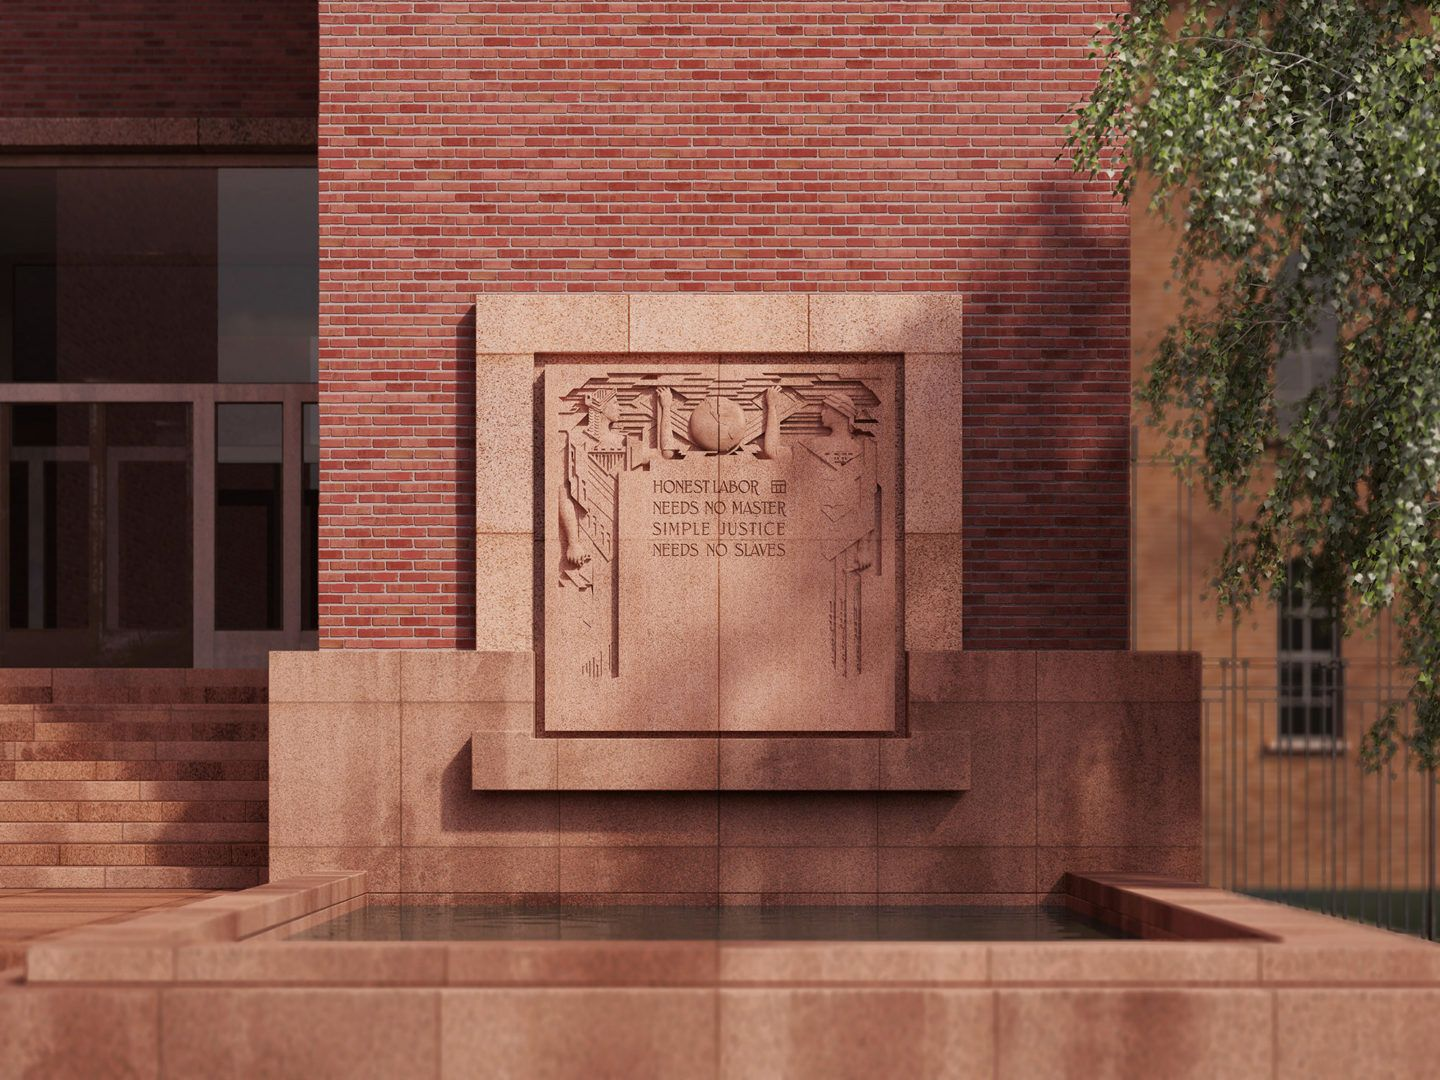 IGNANT-Architecture-David-Romero-Frank-Lloyd-Wright-12